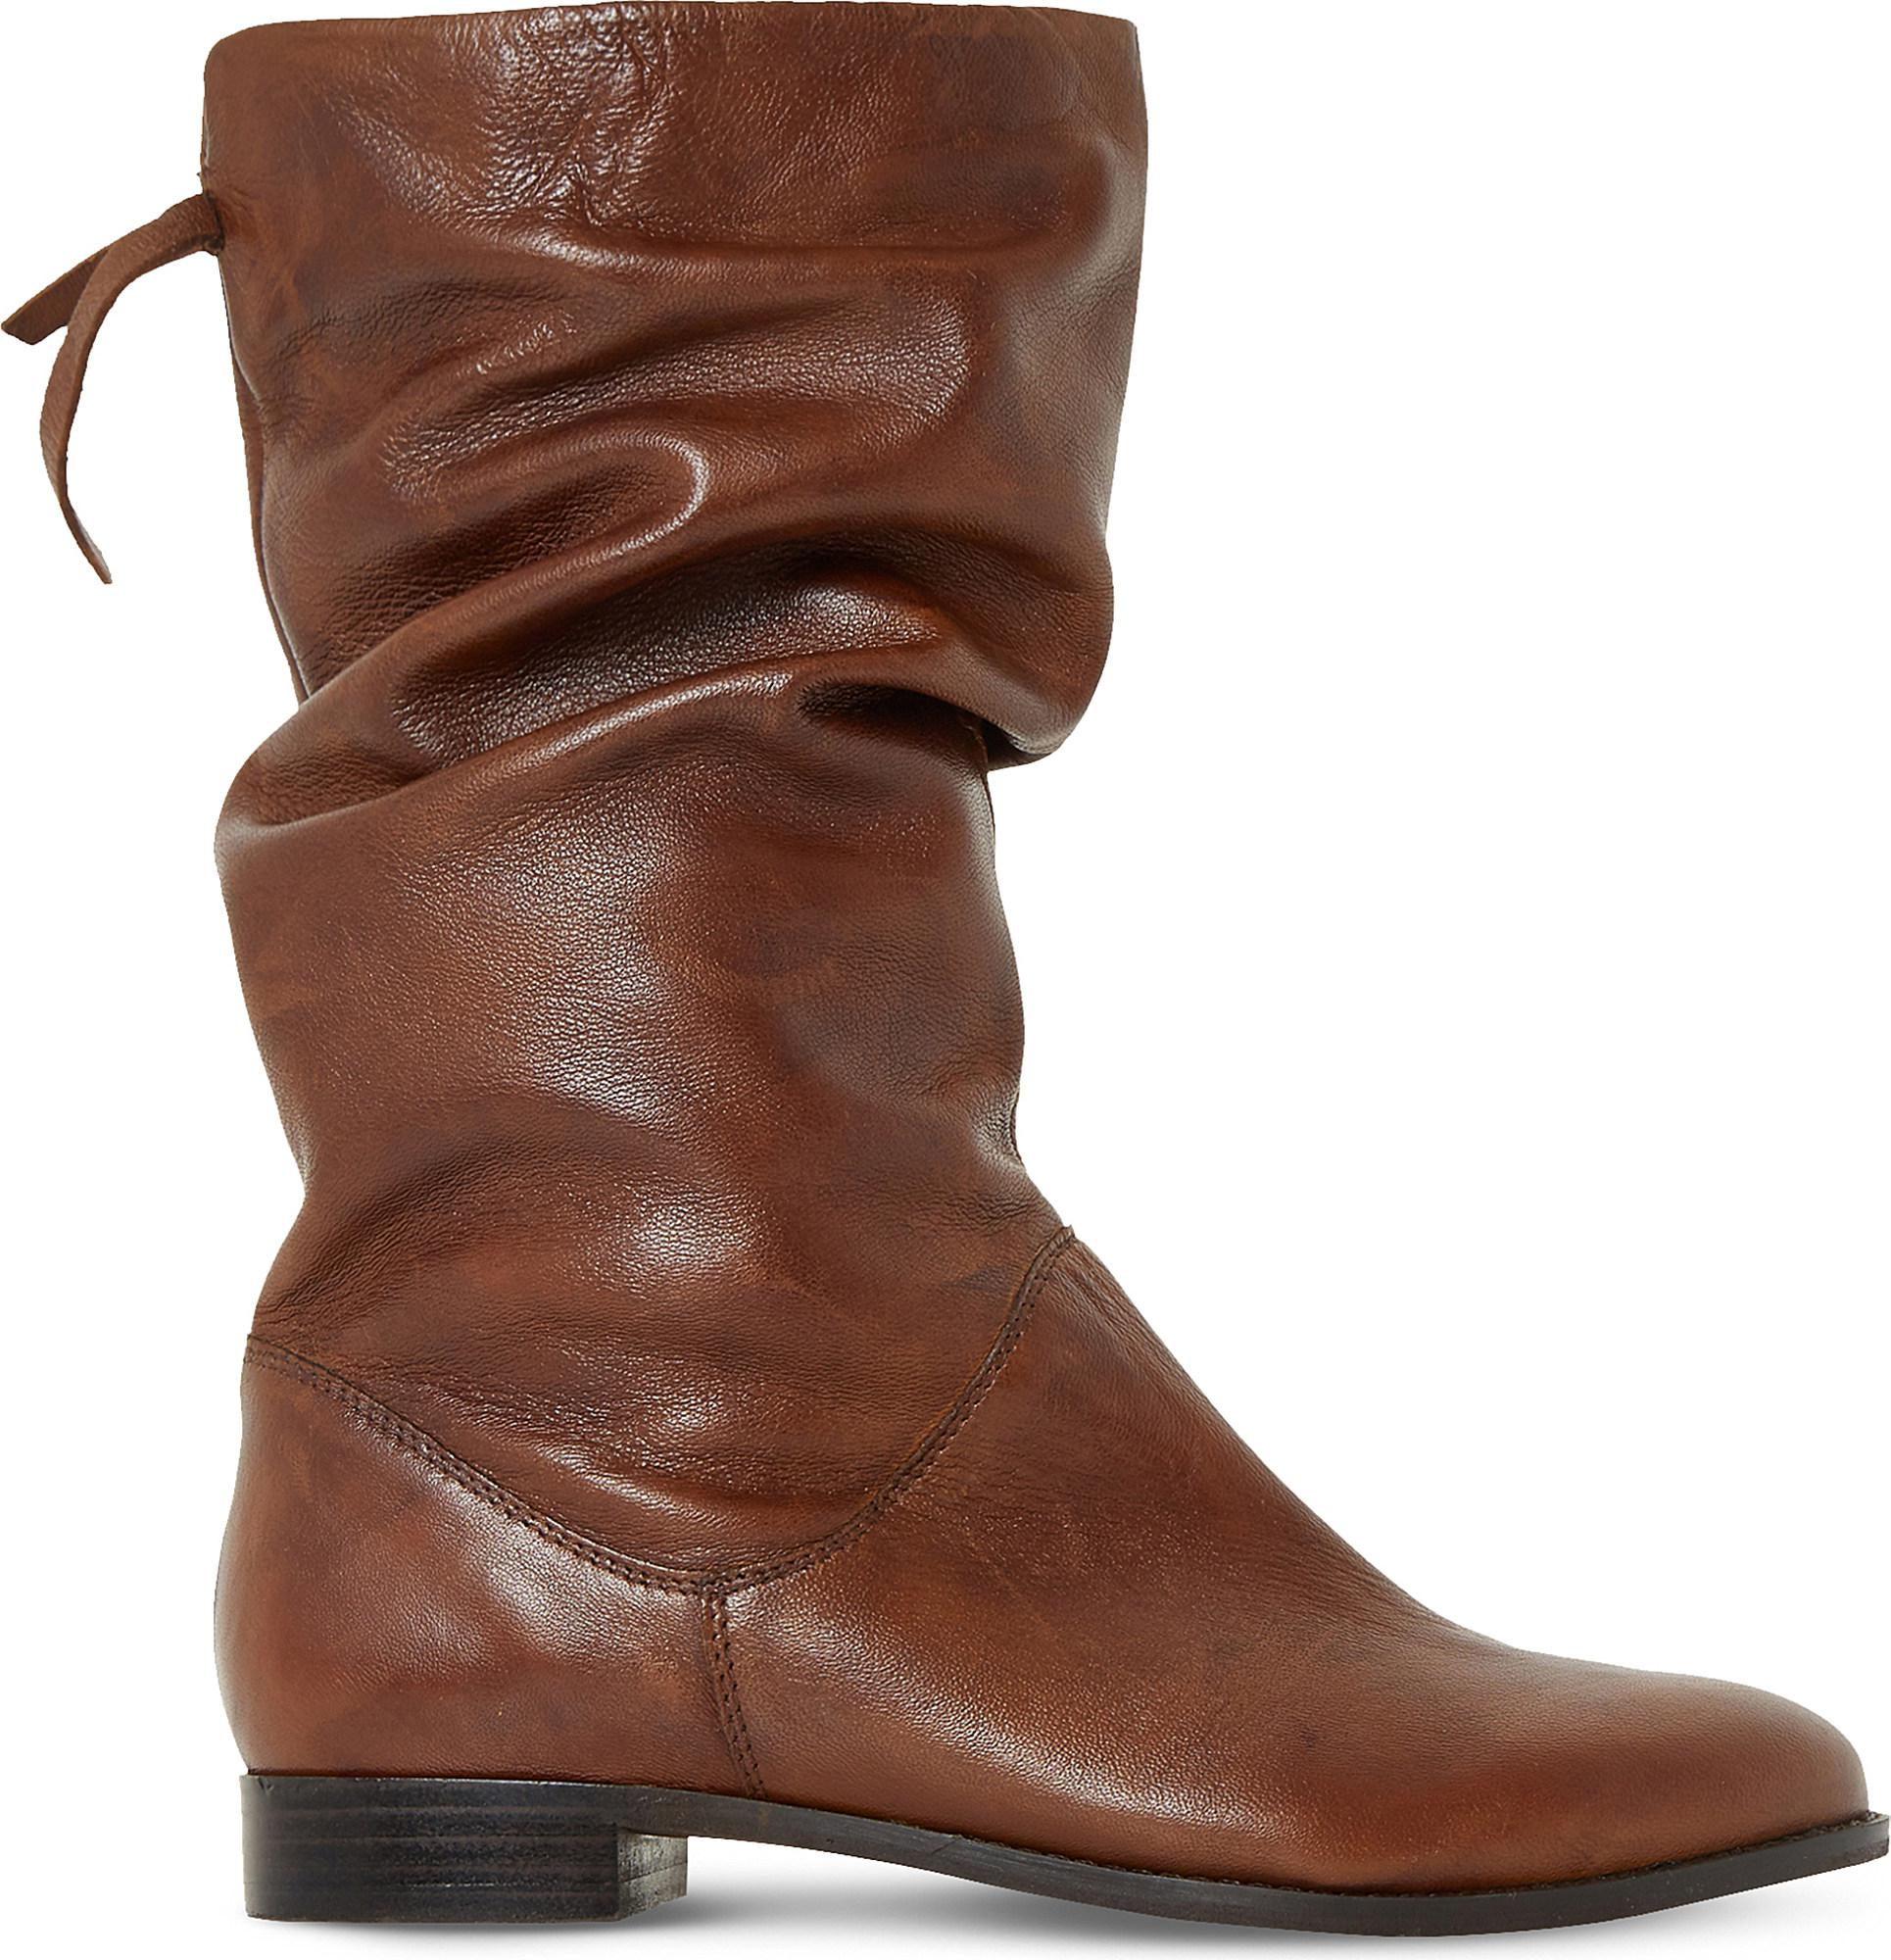 Dune  Women's Brown Rosalind Slouchy Leather Boots